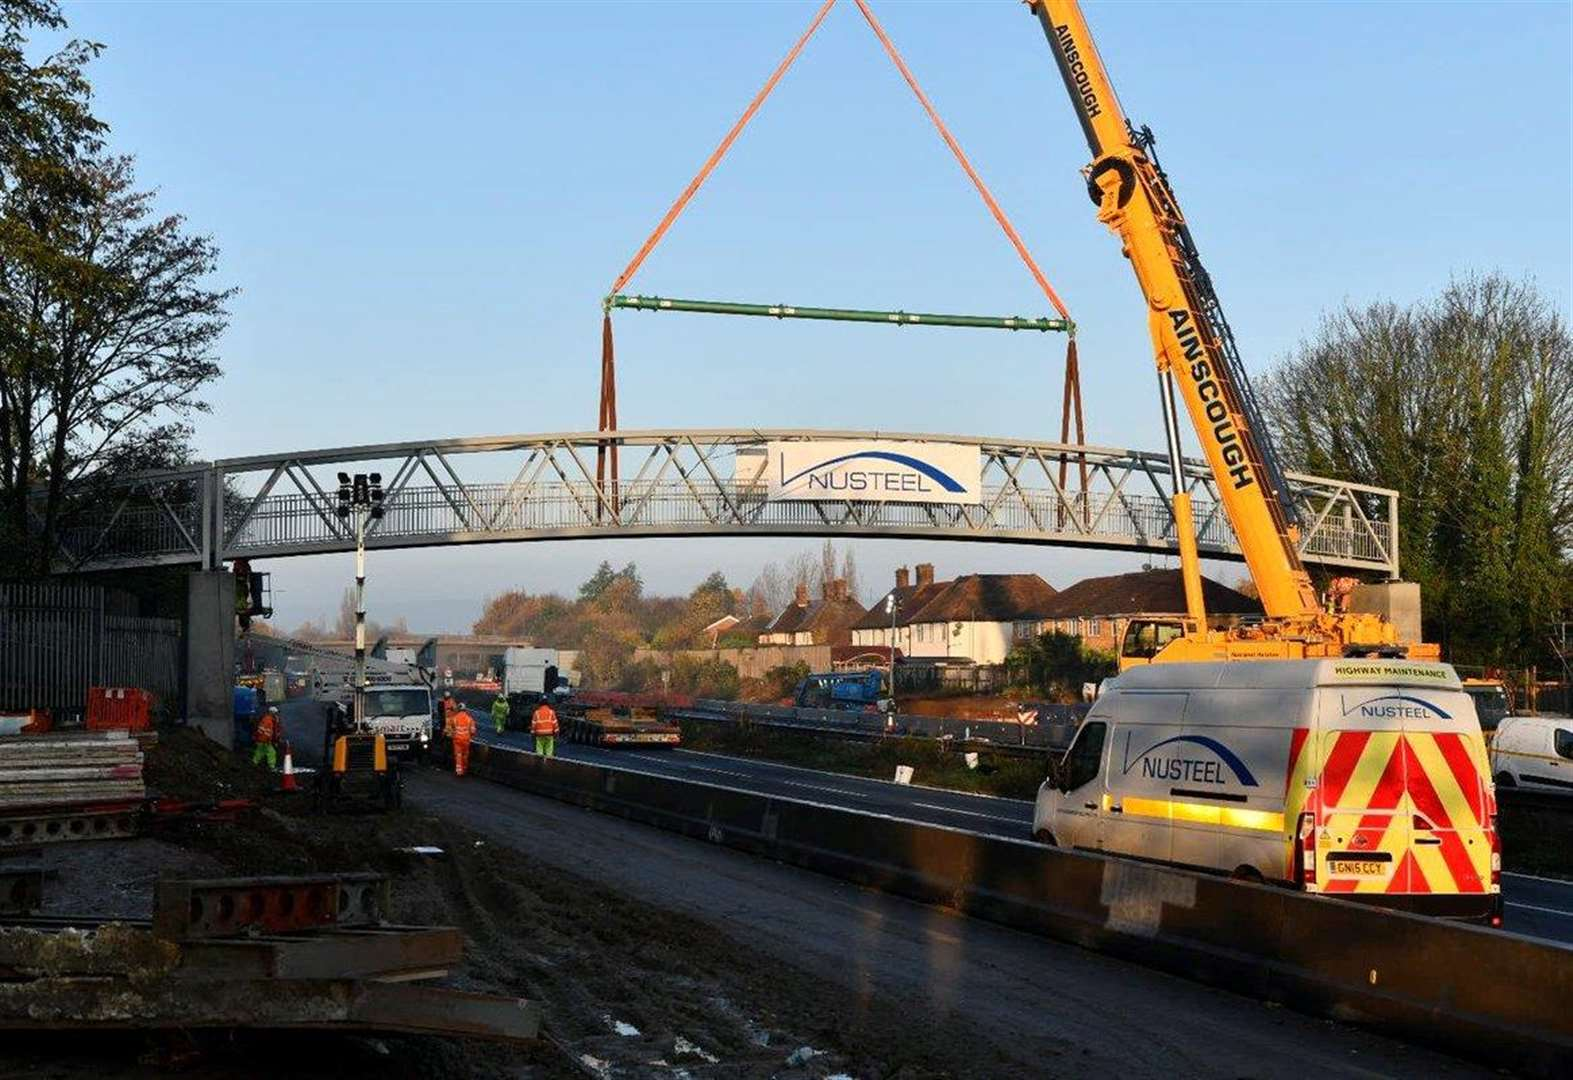 M20 closed for bridge replacement works